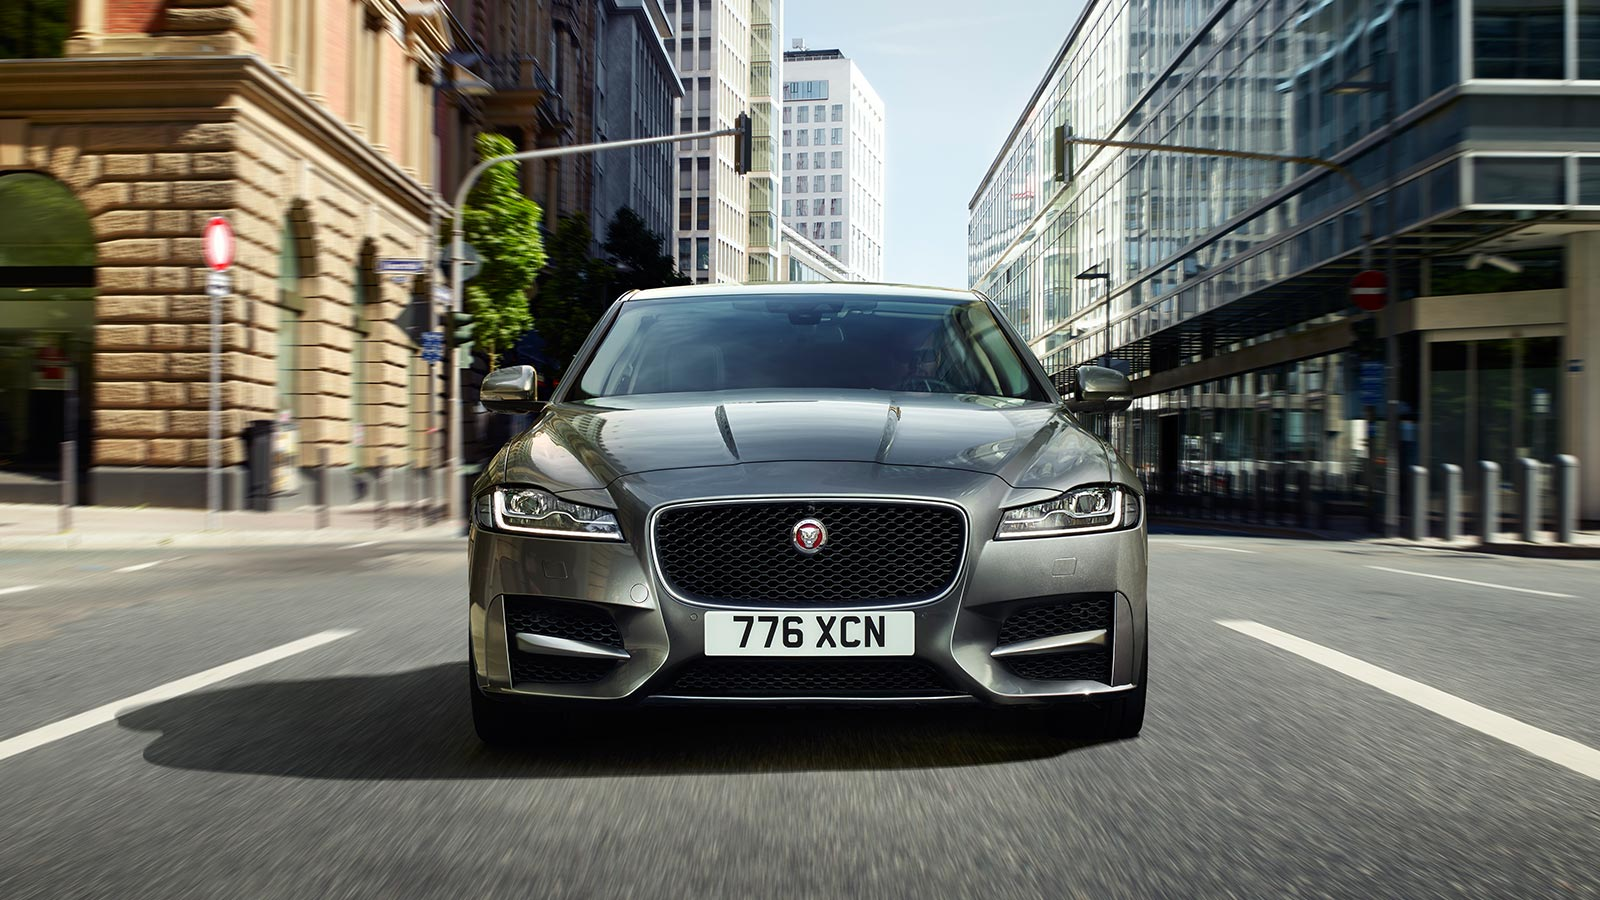 Jaguar XF Driving In City Front View